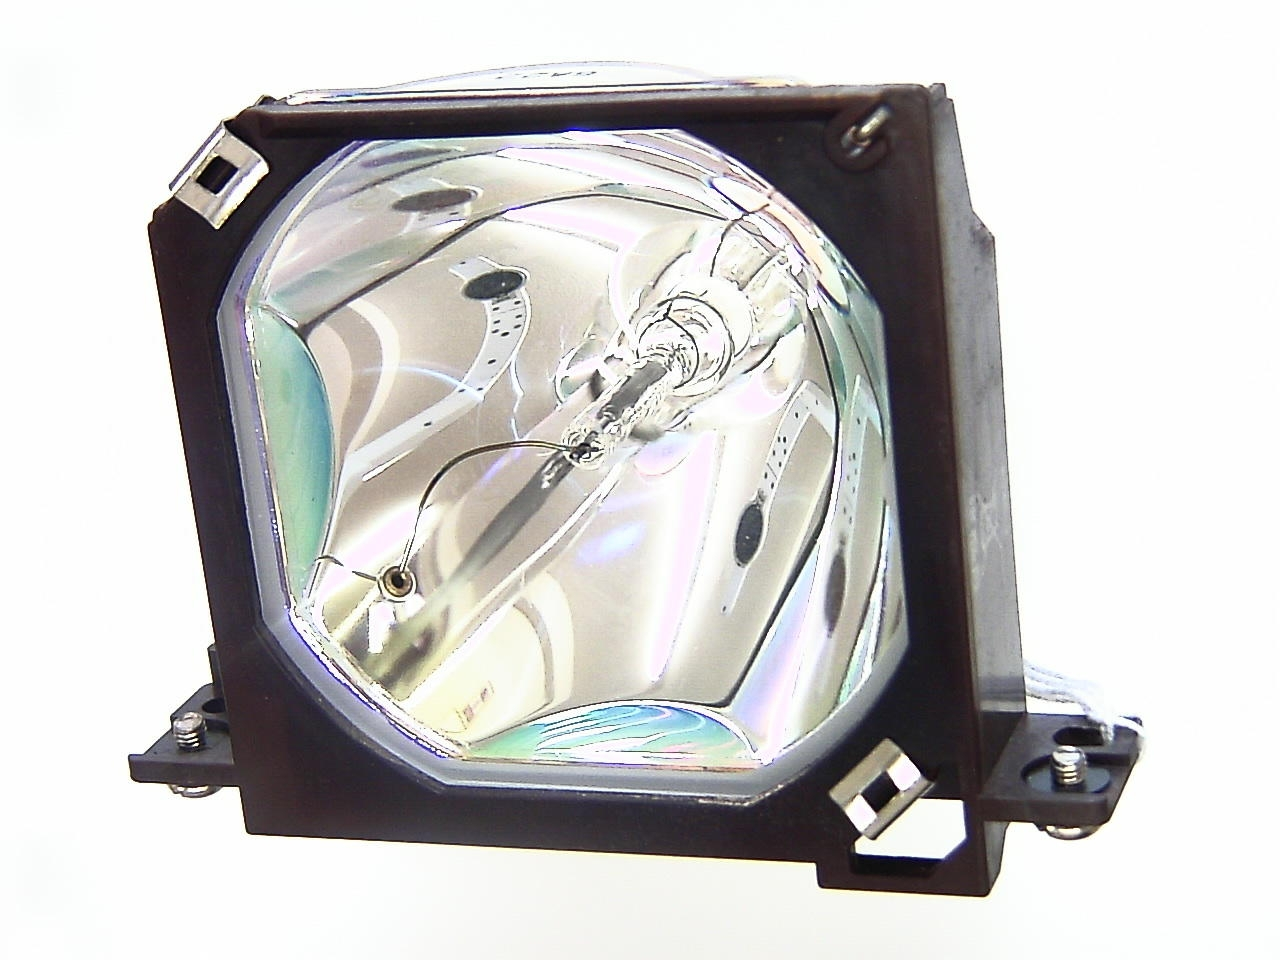 ANDERS KERN ANDERS KERN EMP9100 Genuine Original Projector Lamp